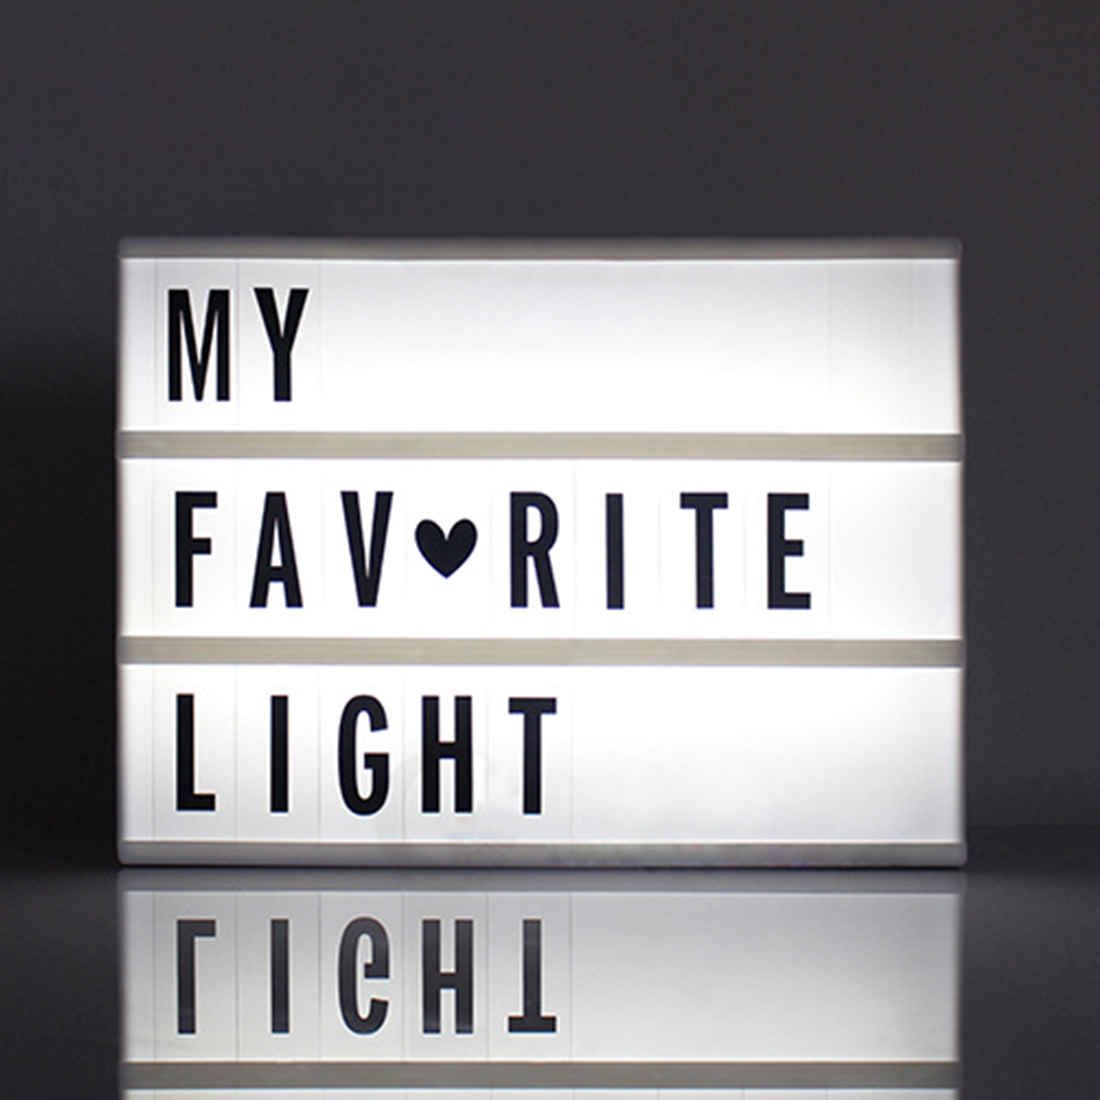 Creative Cinema LED Porch Light Up Sign Box Lightbox Message Board Letter Cinematic LED Symbol Home Party Wedding Lamp Decor